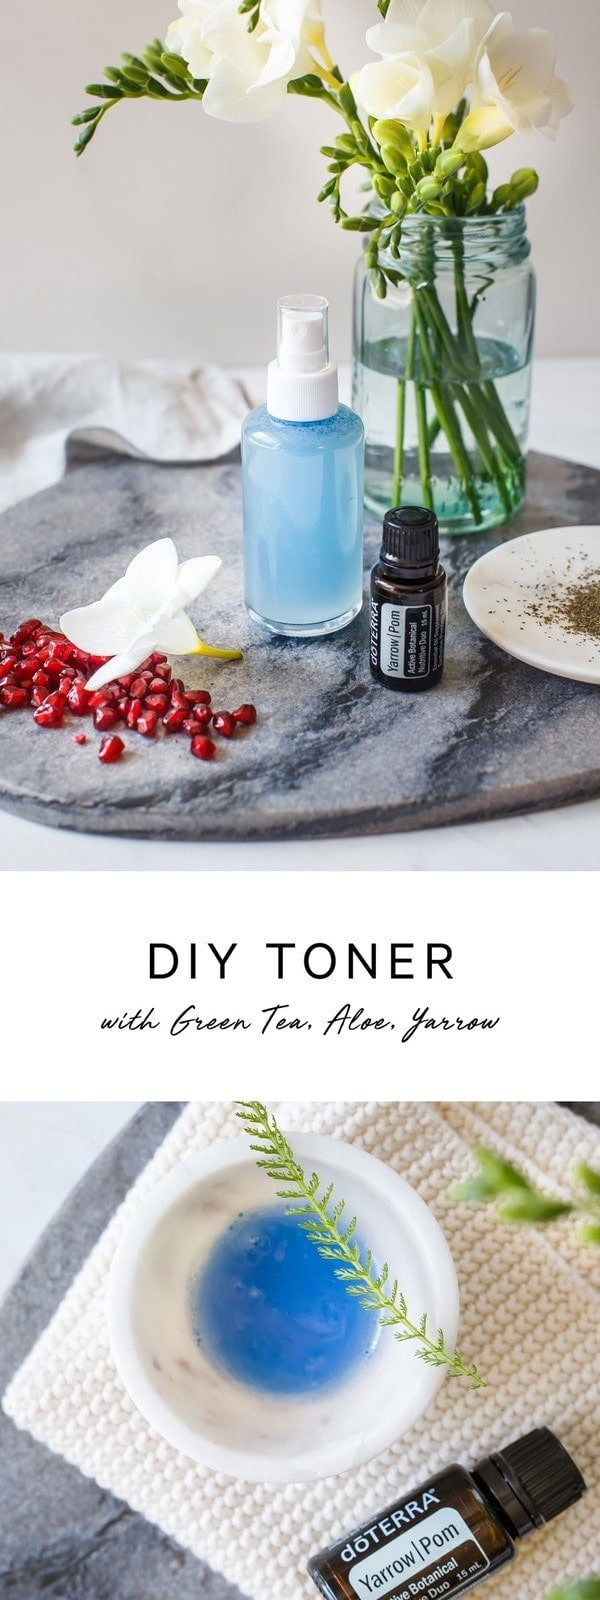 DIY toner to tighten and hydrate the skin using four natural ingredients: green tea, witch hazel, aloe and essential oils. #no-toxbeauty #diybeauty #notoxskincare #essentialoils #essentialoilsforskin #naturaltoner #naturalskincare #witchhazel #hydratig #shrinkpores #diytonerface #AscensionKitchen